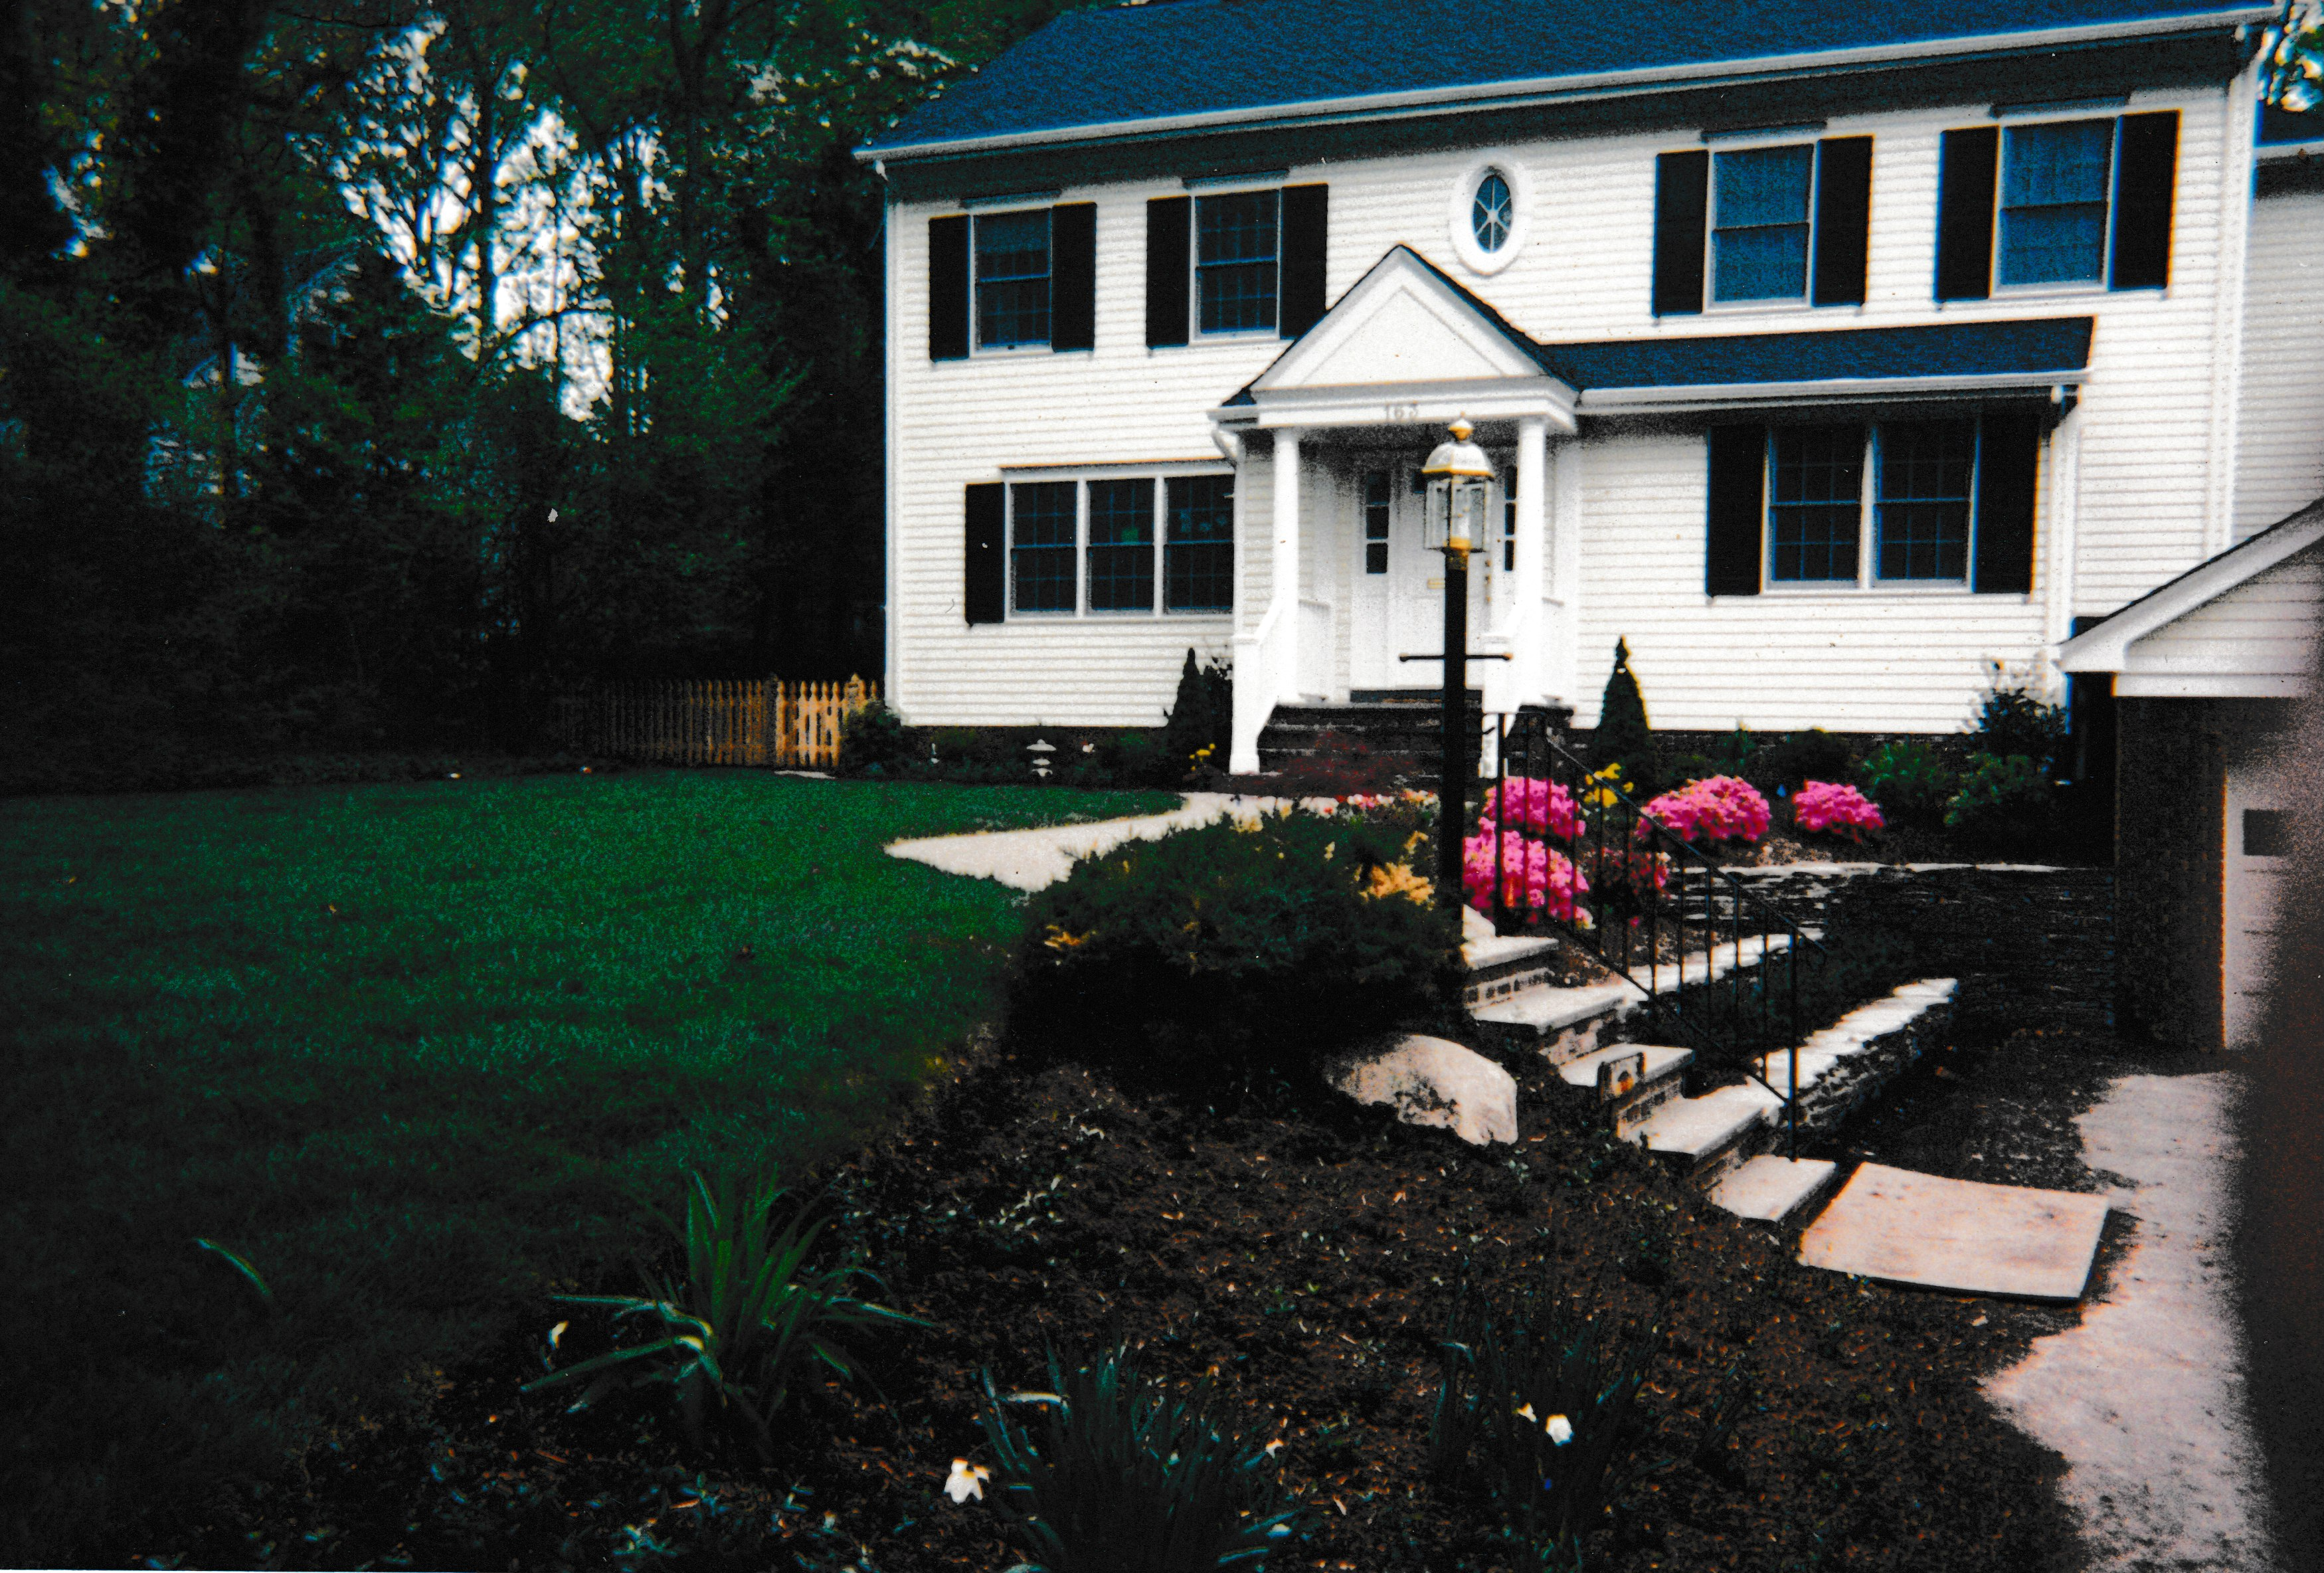 Front yard with colorful shrubbery and brick stairway